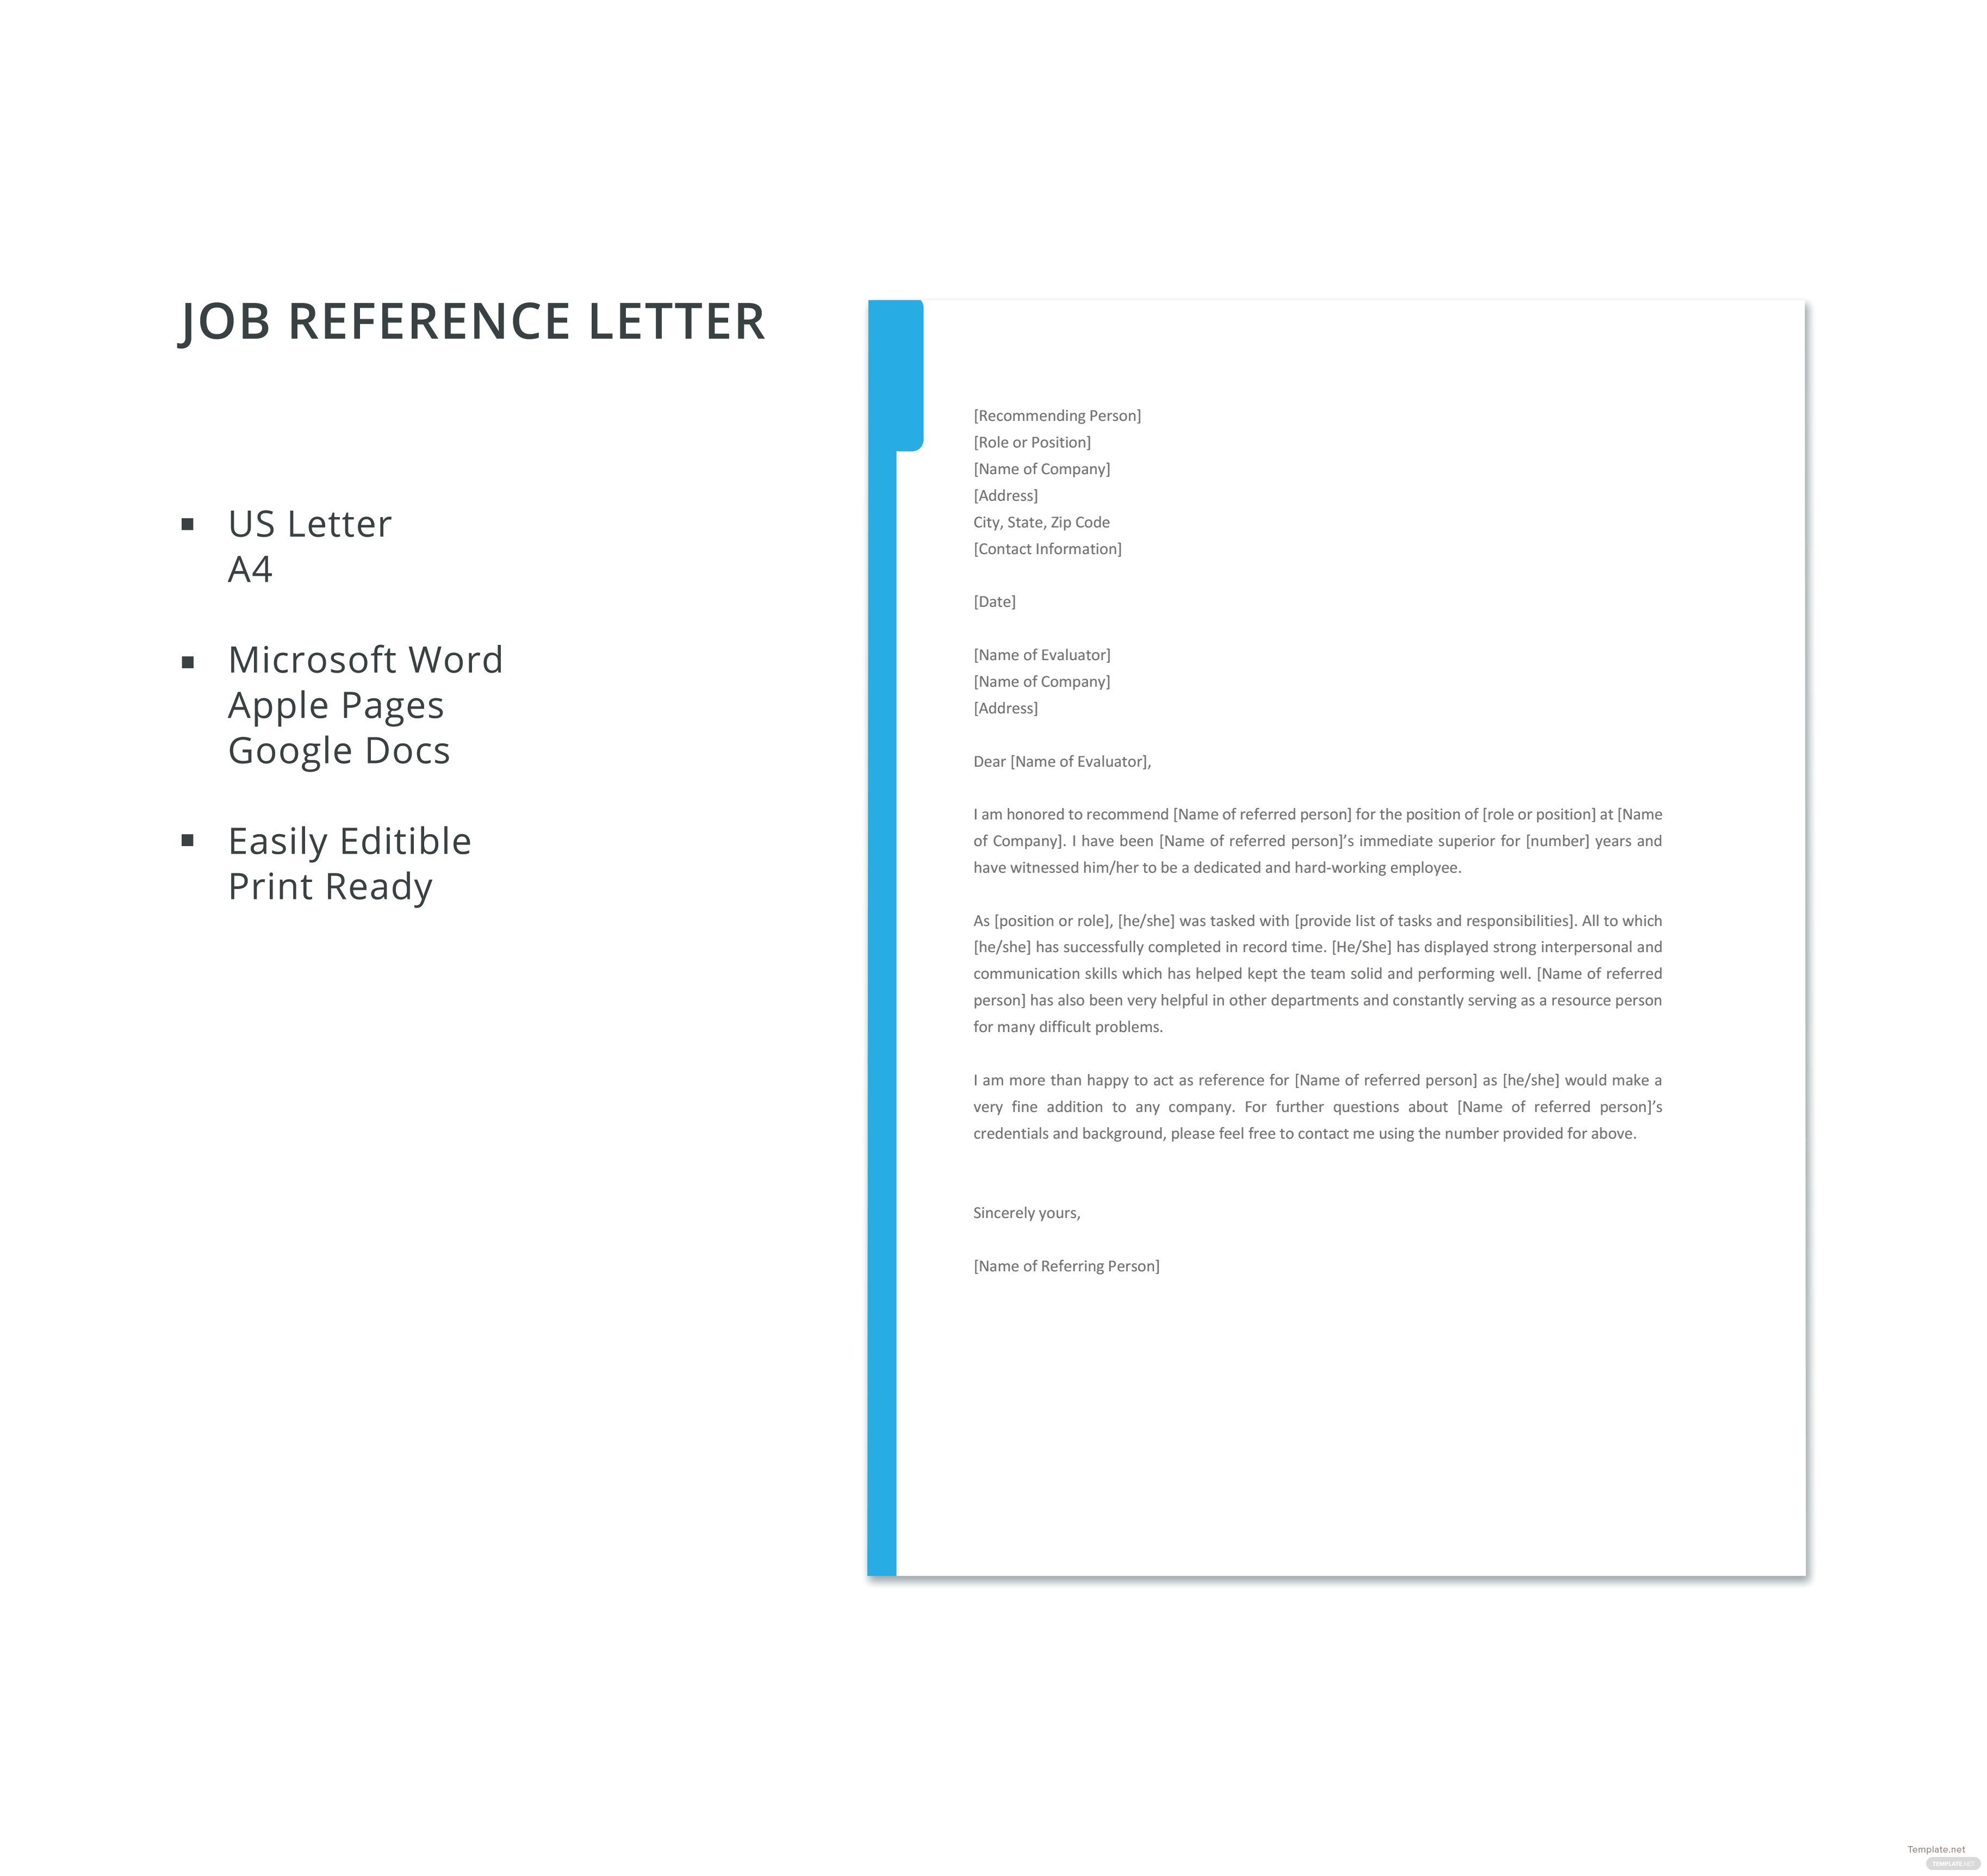 Job reference template microsoft word idealstalist job reference template microsoft word spiritdancerdesigns Choice Image